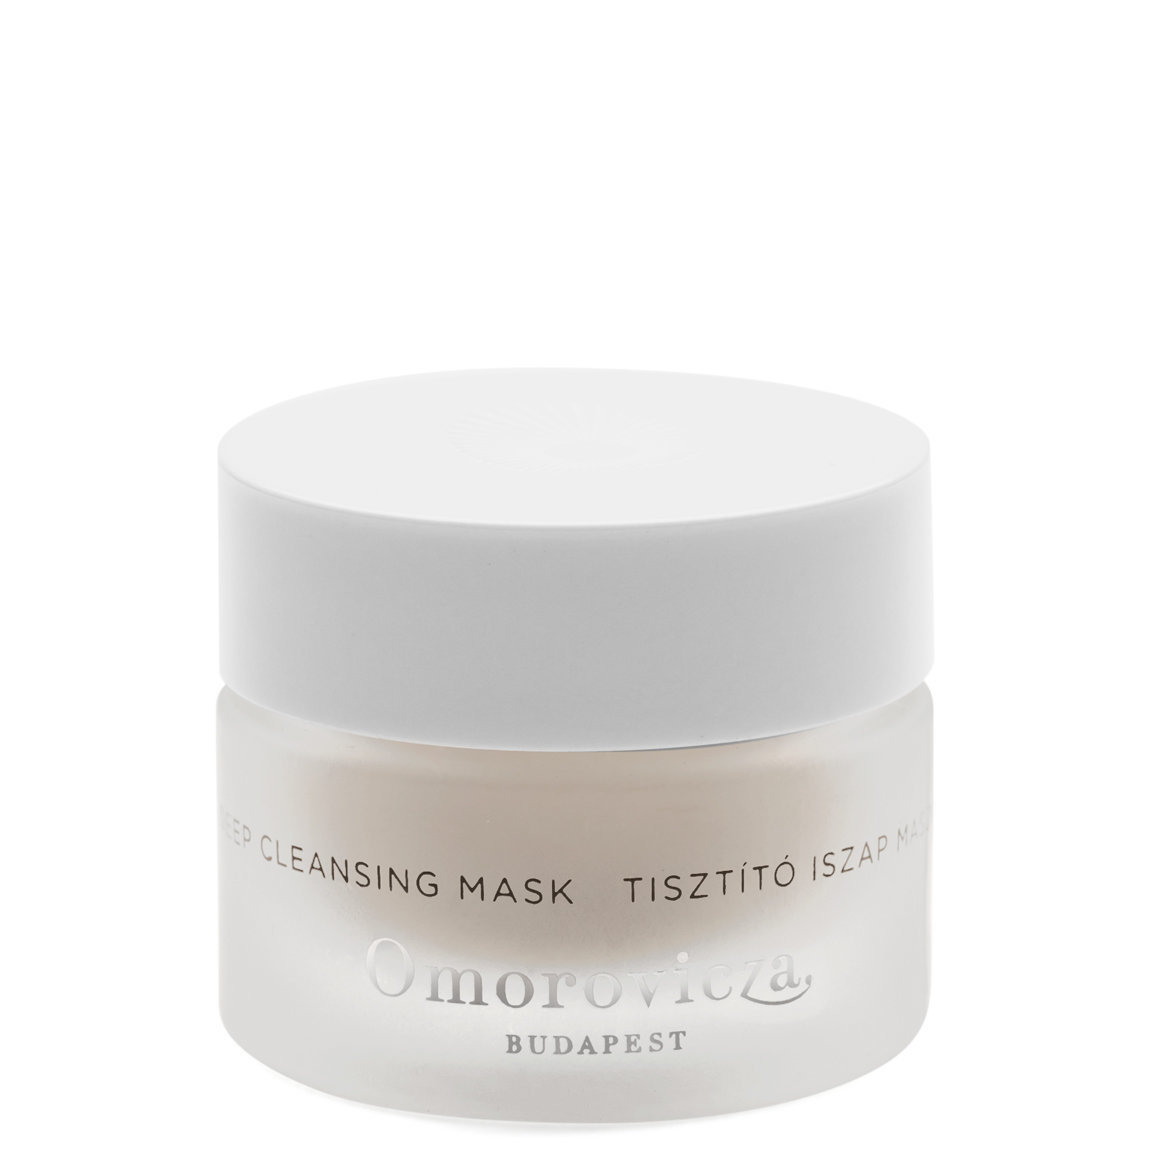 Omorovicza Deep Cleansing Mask 15 ml product swatch.